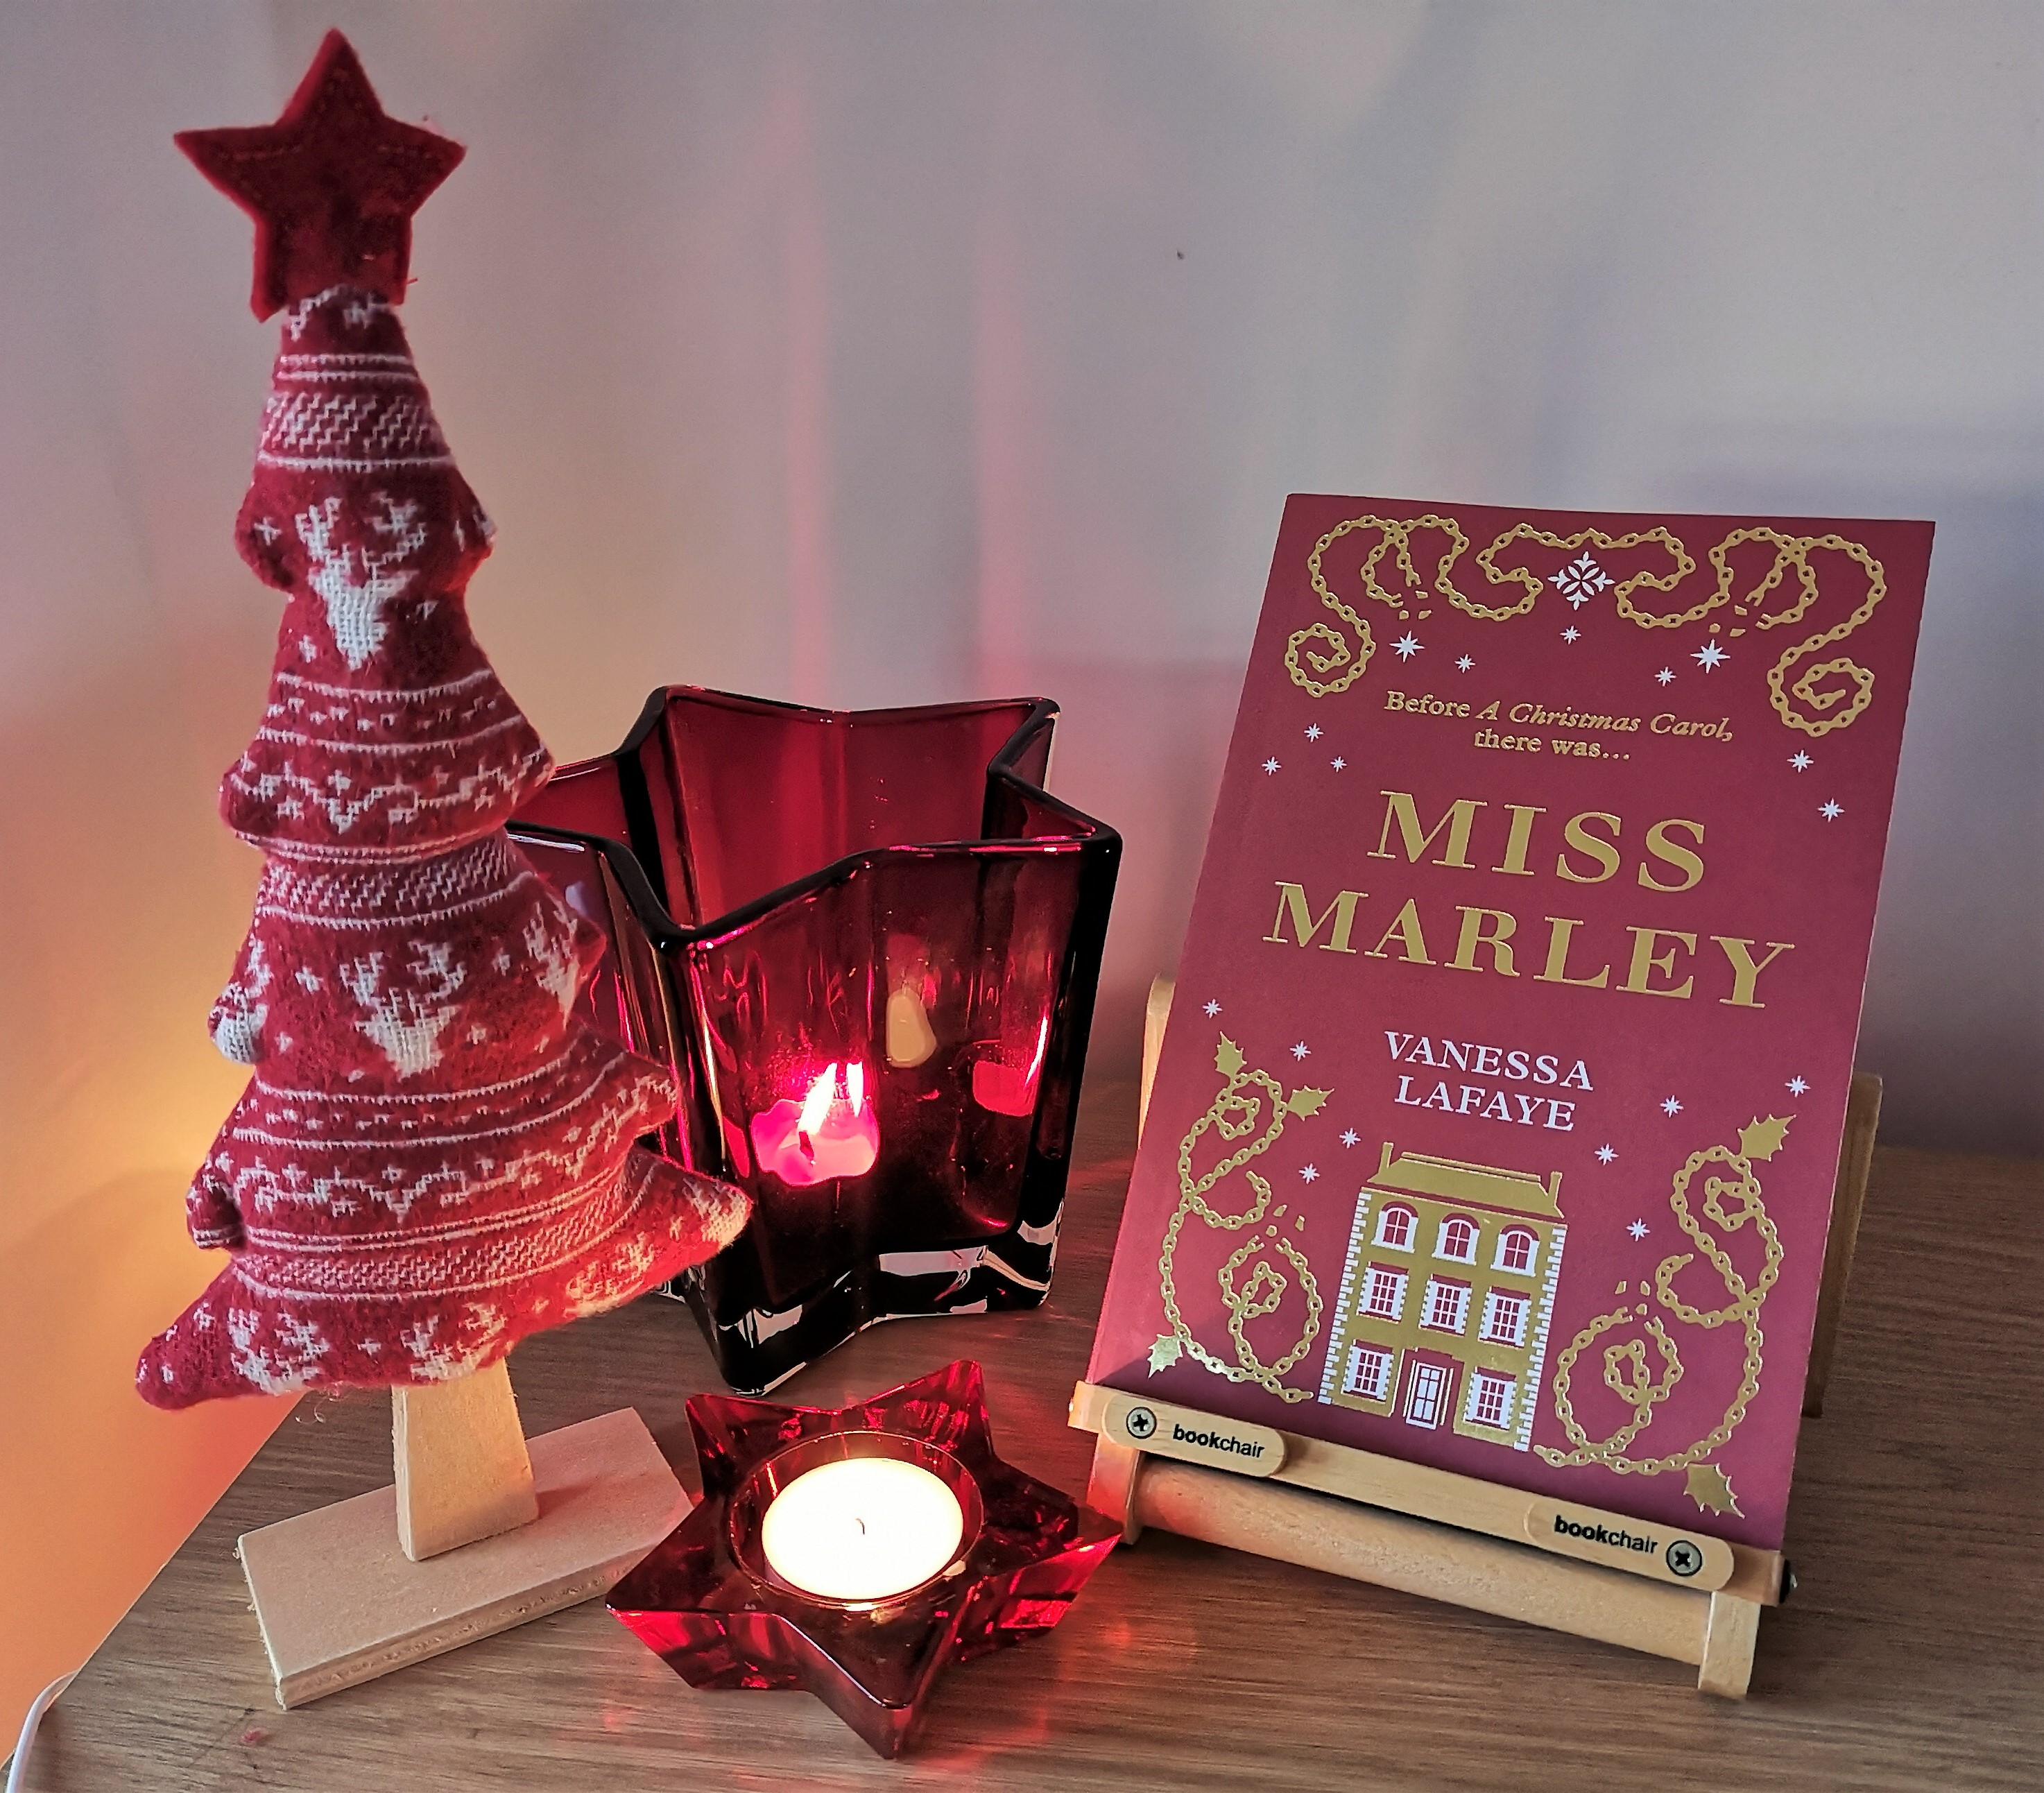 A photo of the book Miss Marley along with some Christmas candles and a nordic Christmas tree.